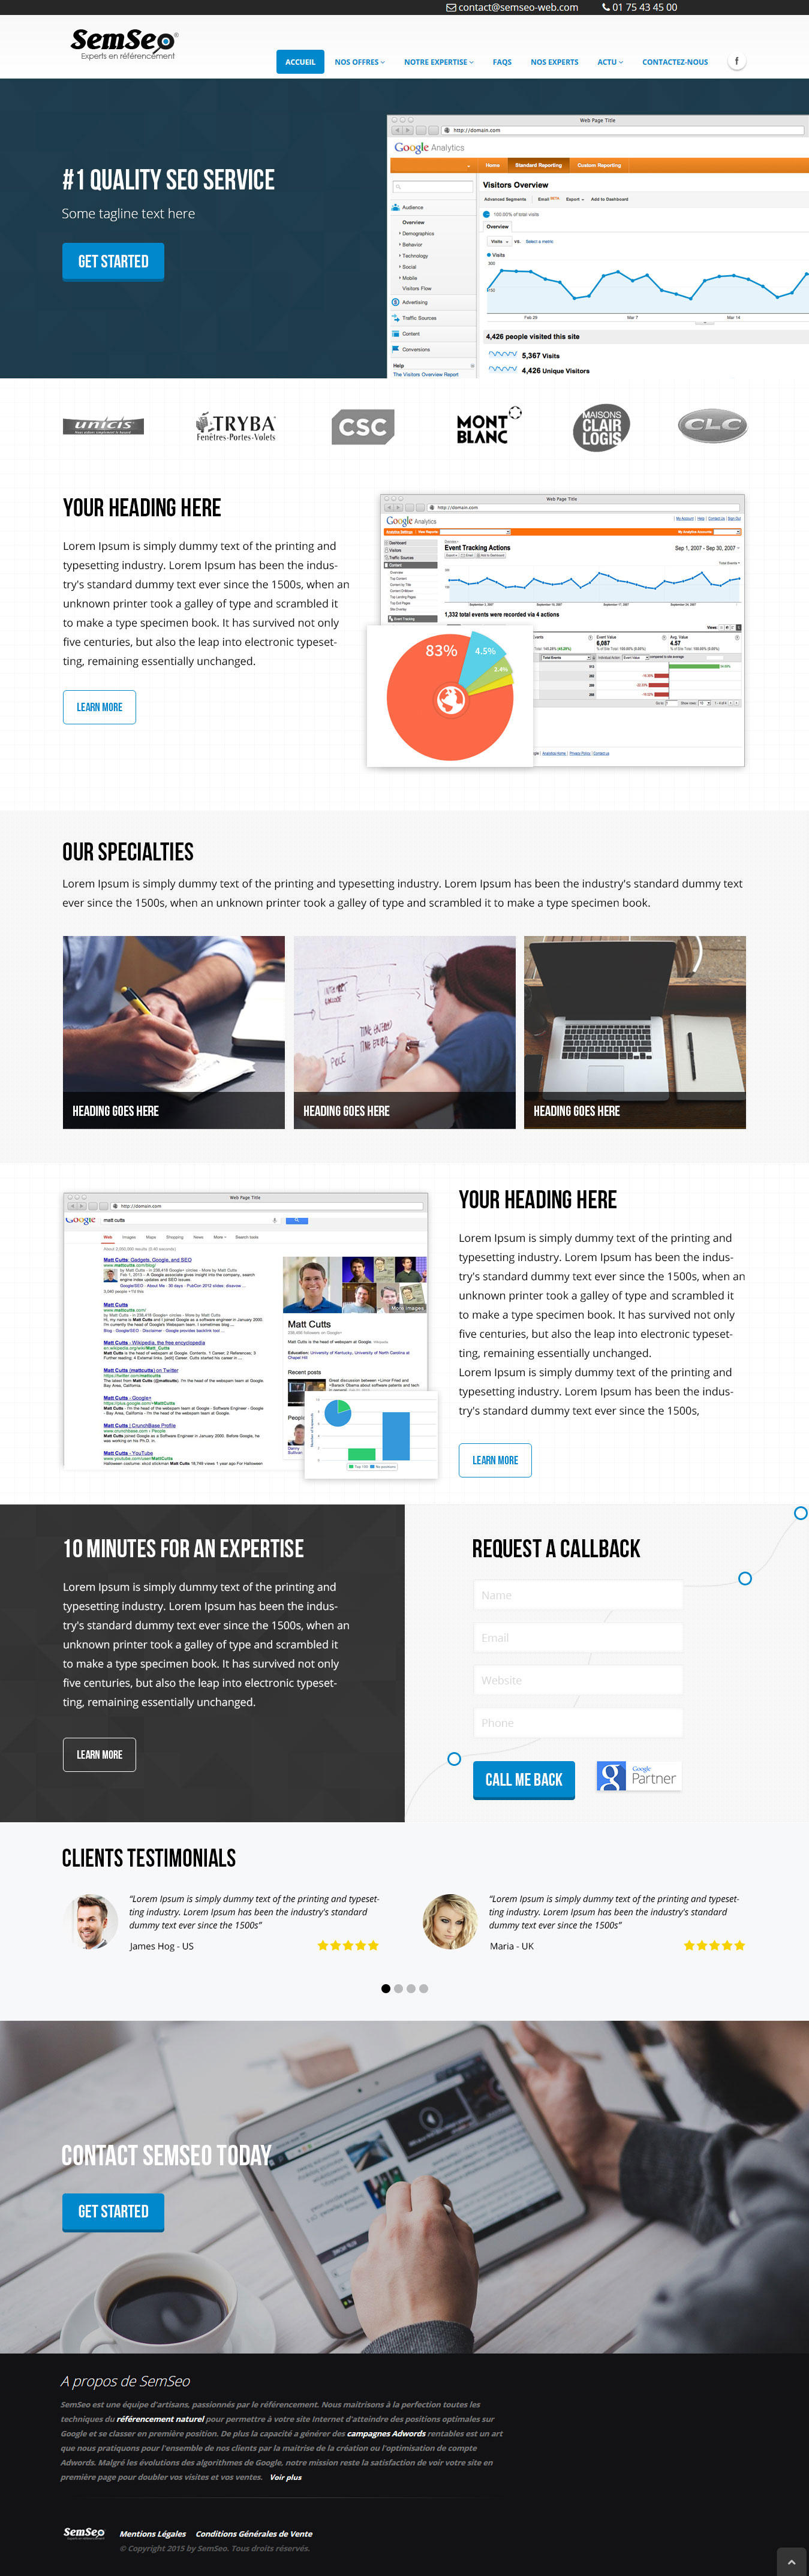 Professional Homepage Design by BarwalDesigns - 101425